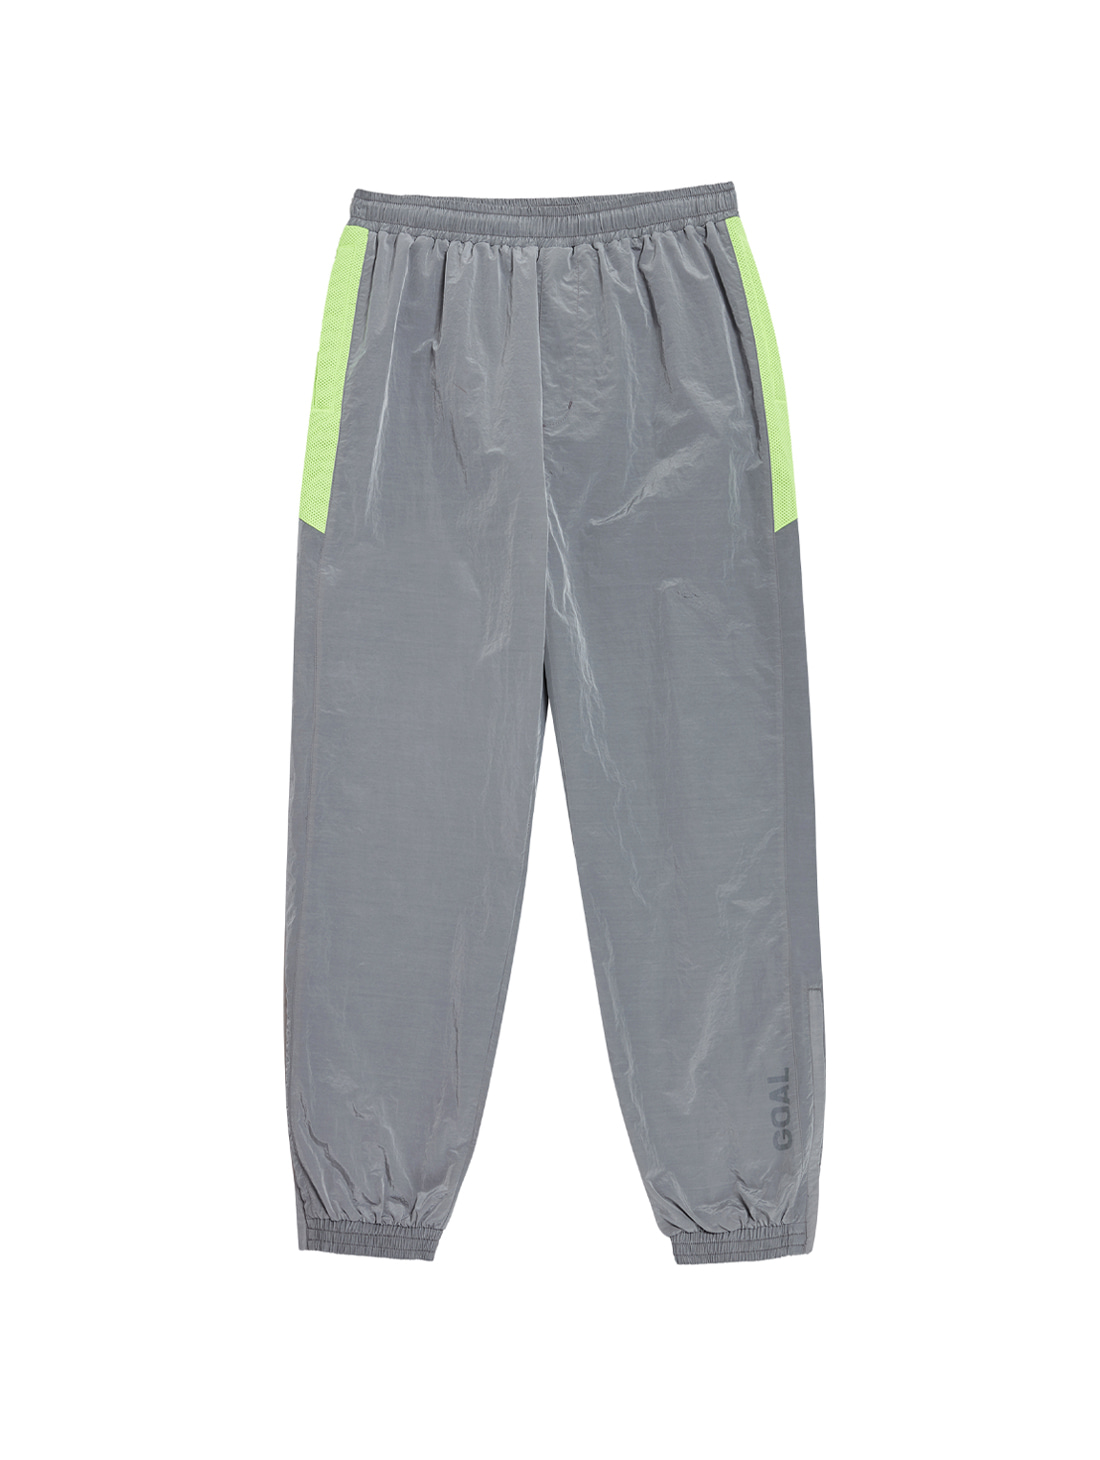 GOALSTUDIO WARMUP PANTS - GREY